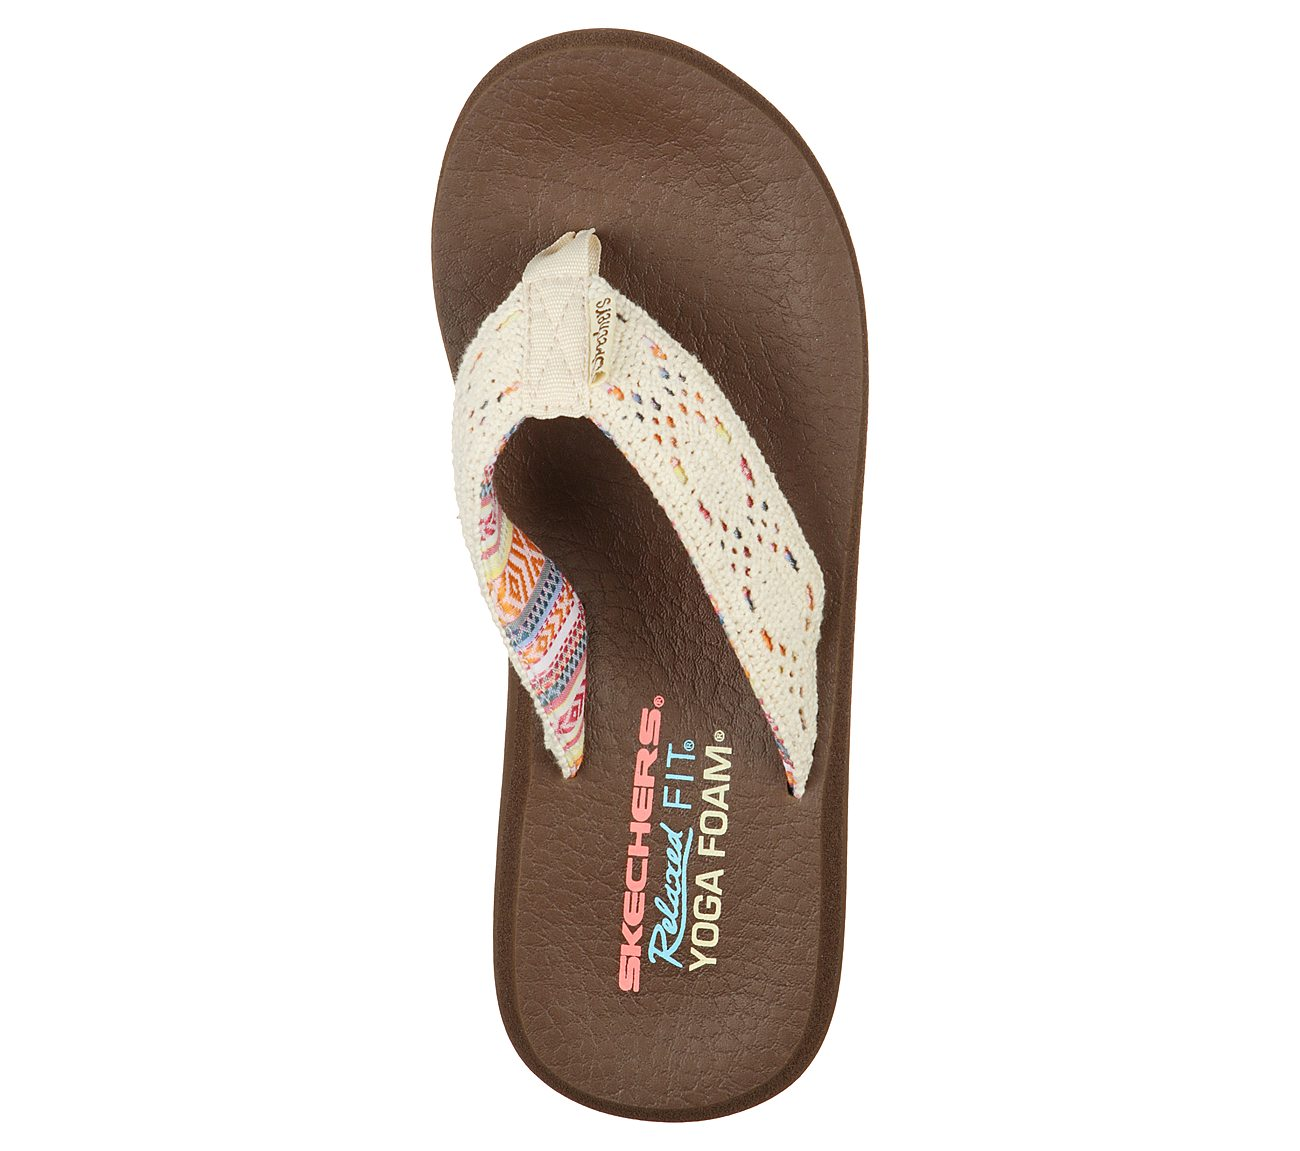 skechers yoga foam sandals. skechers yoga foam sandals